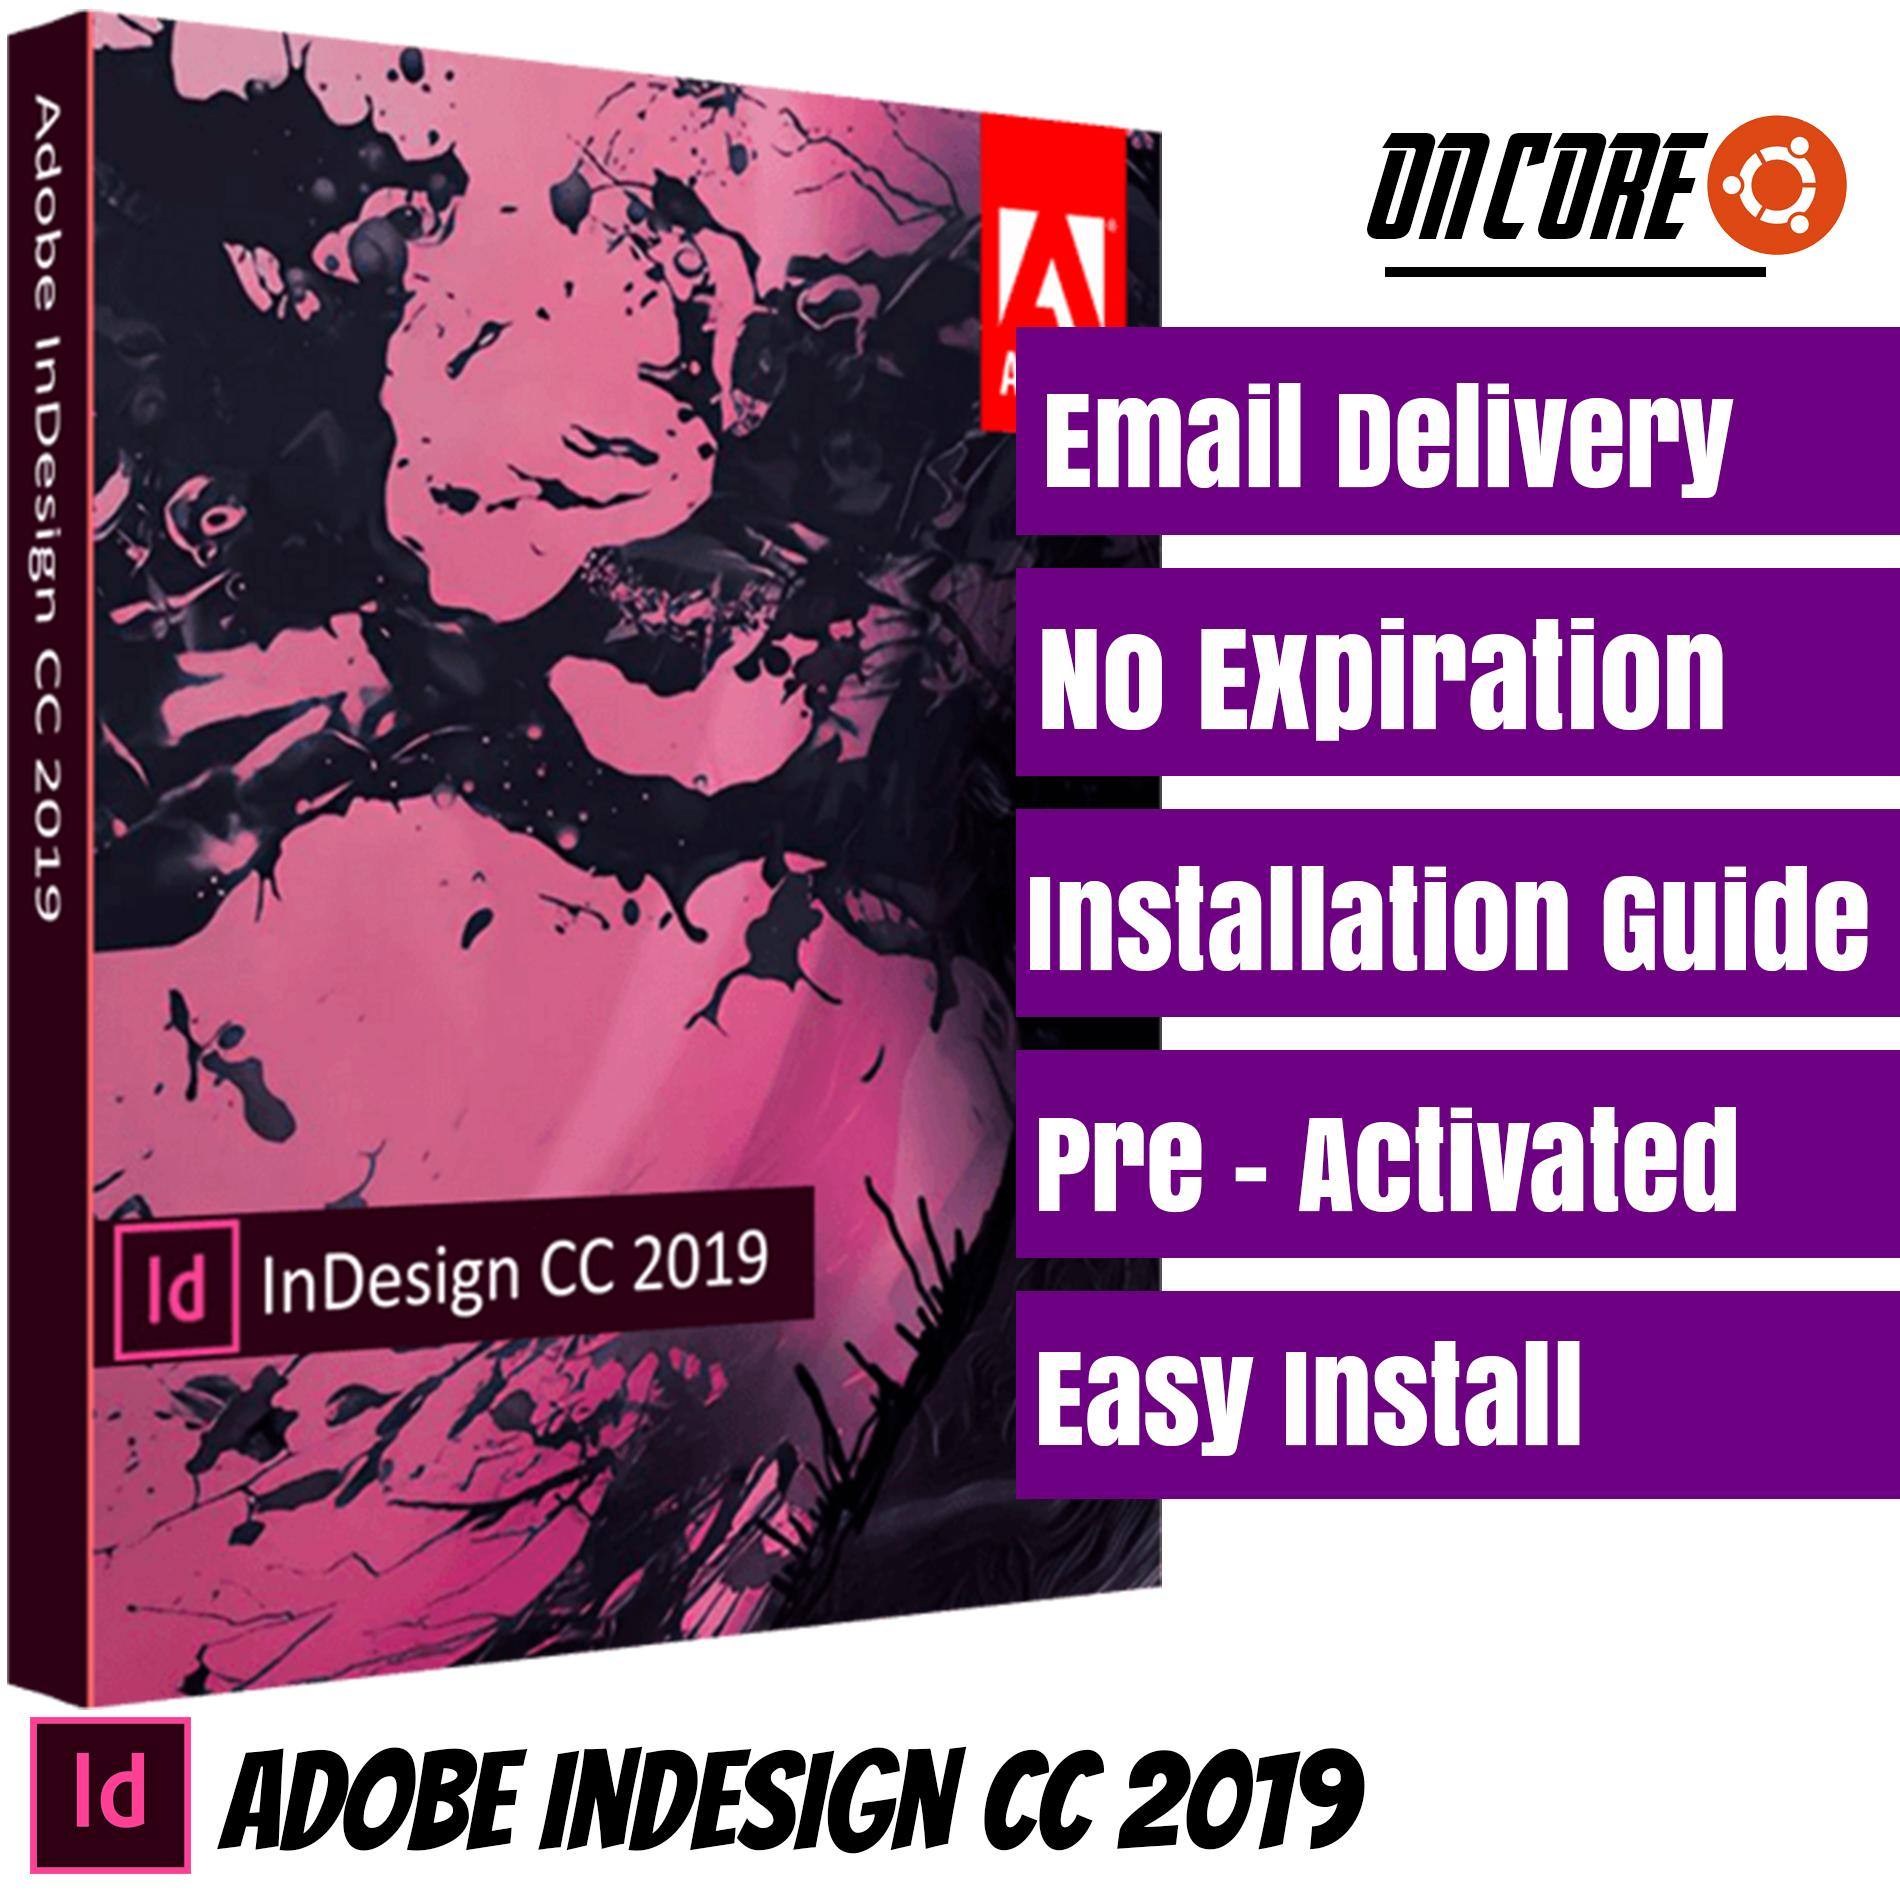 Adobe InDesign CC 2019 (32bit/64bit Windows) Lifetime Activated / Pre  Activated / No Expiration